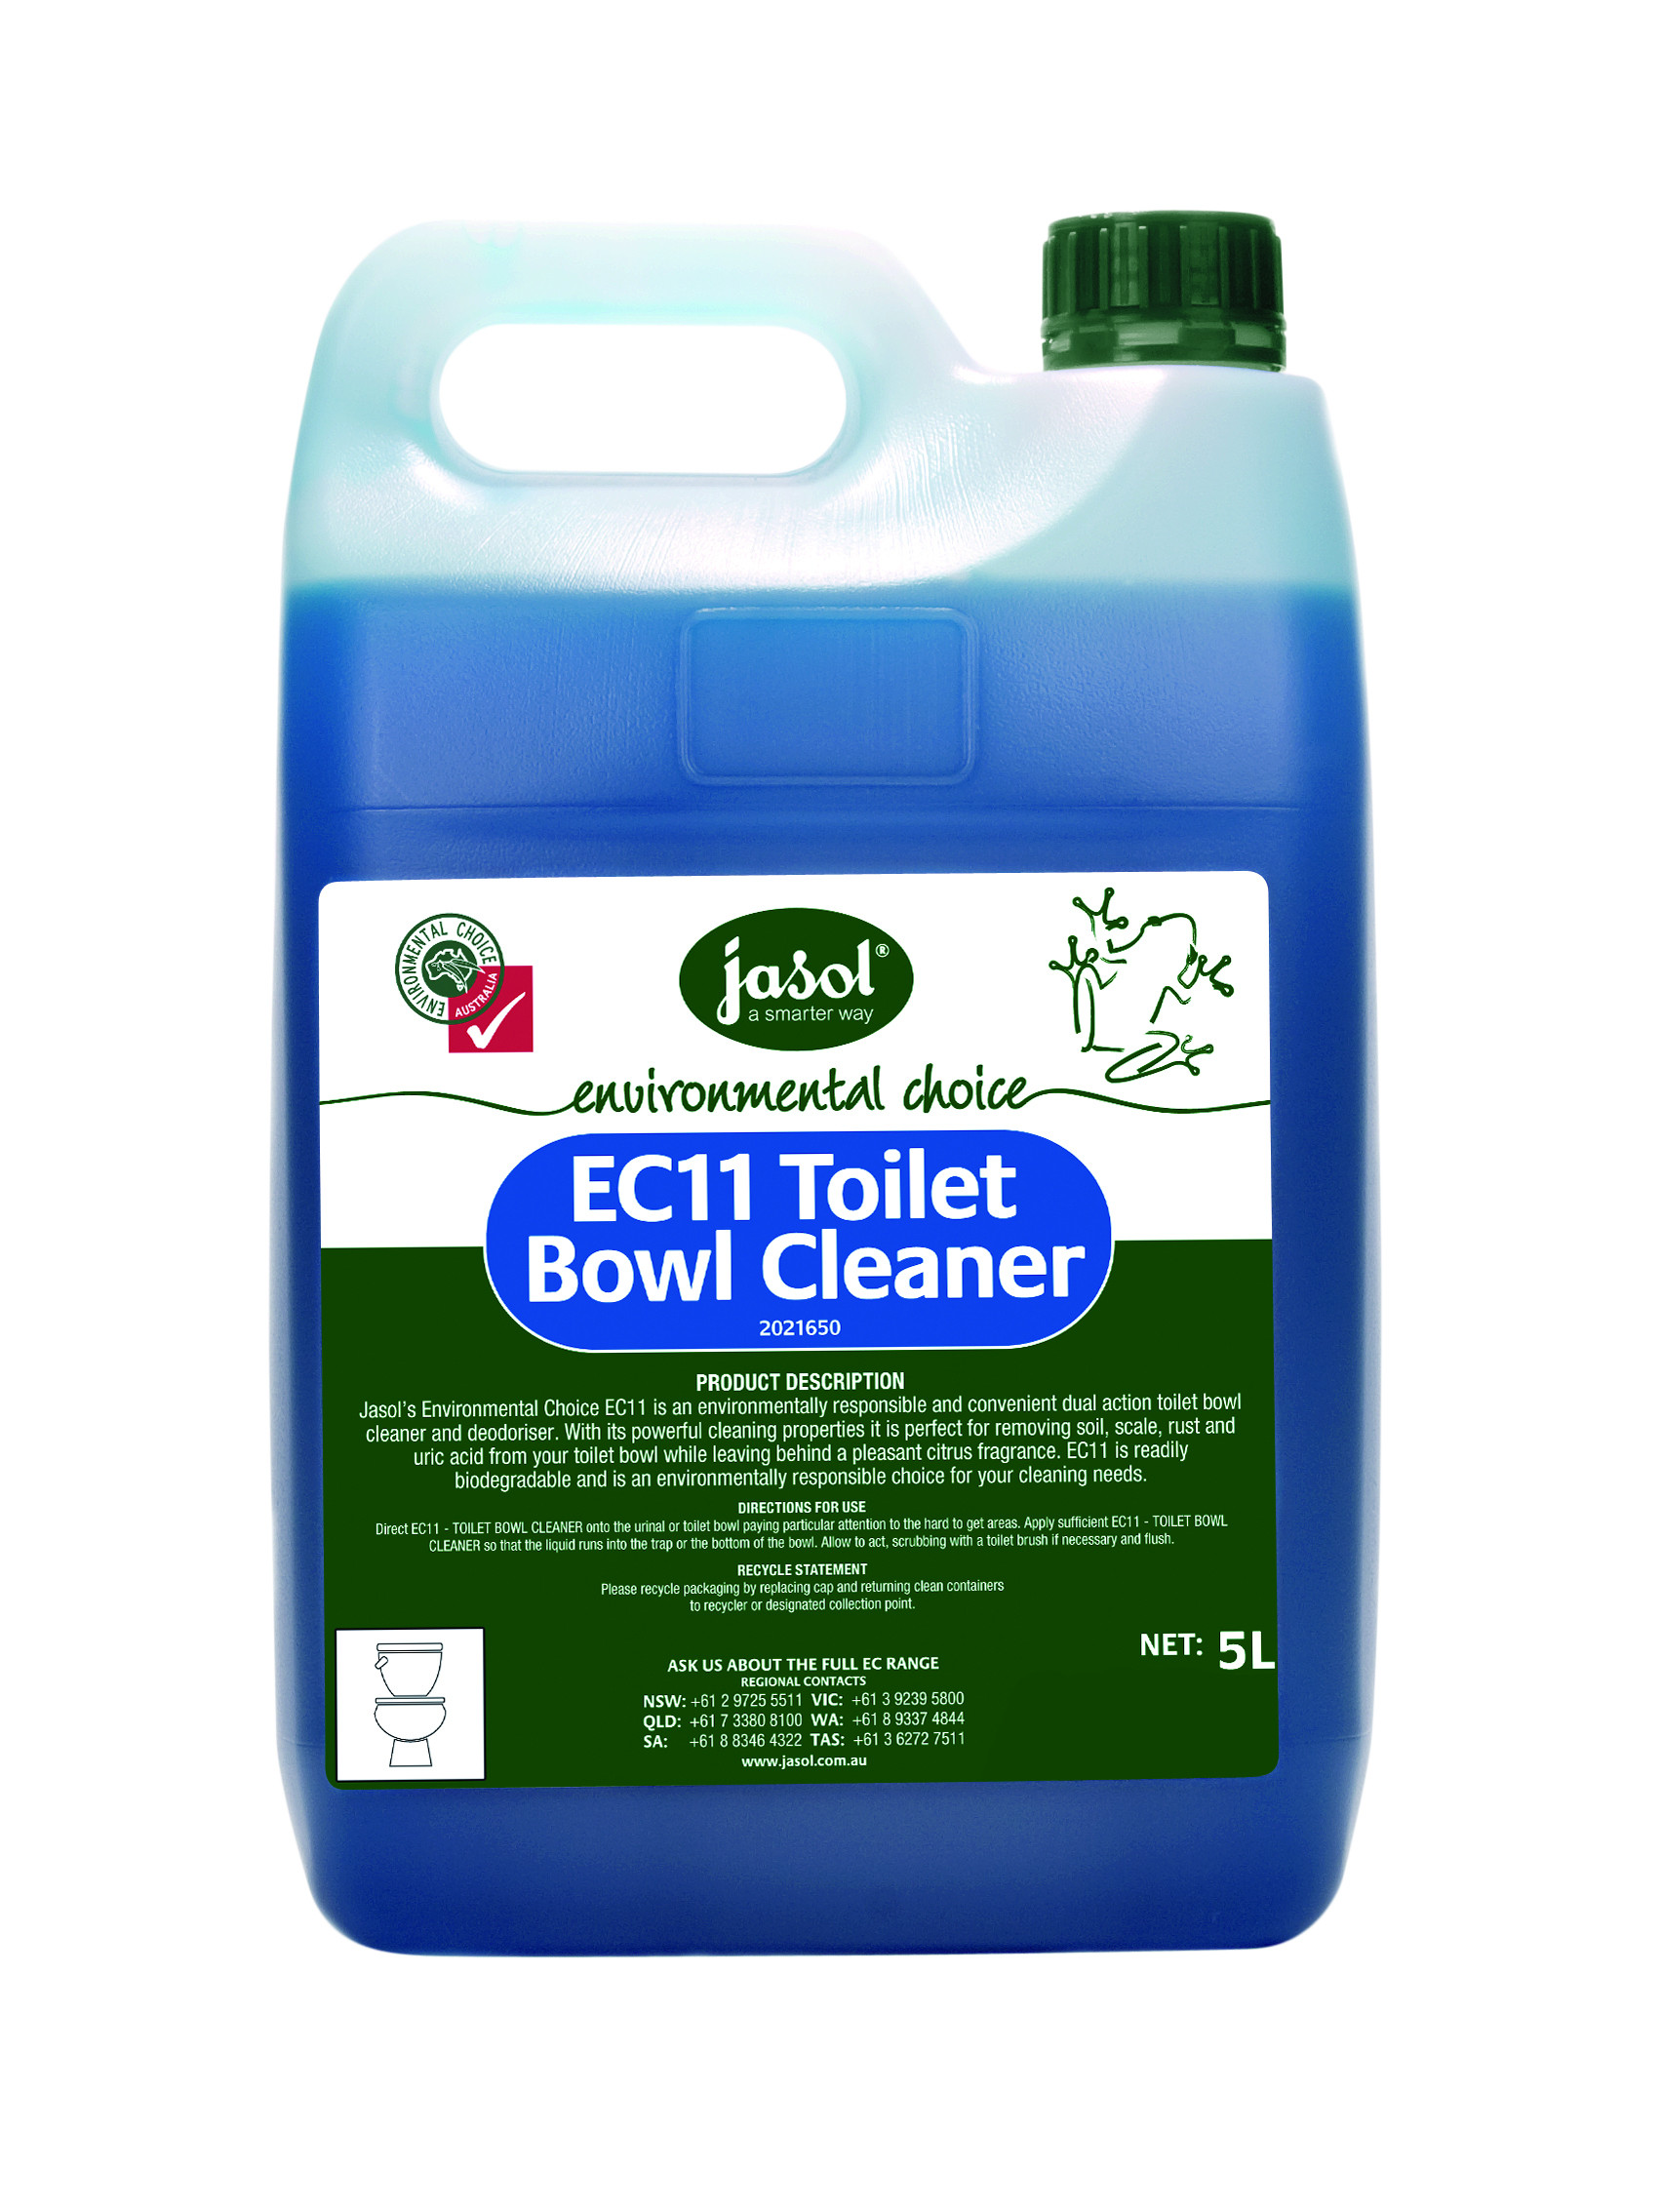 EC11 TOILET BOWL CLEANER